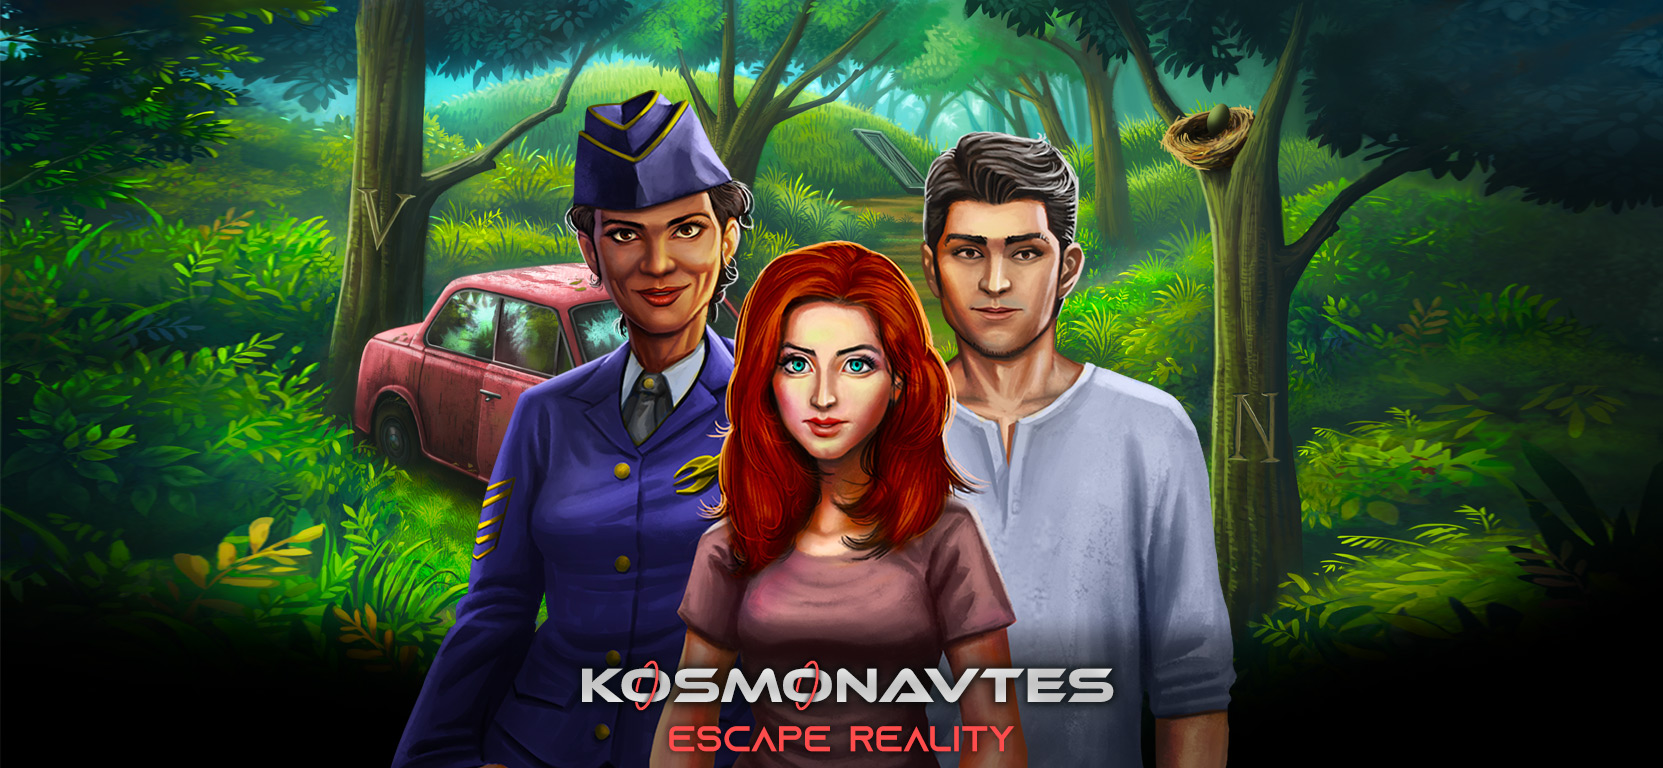 Kosmonavtes: Escape Reality